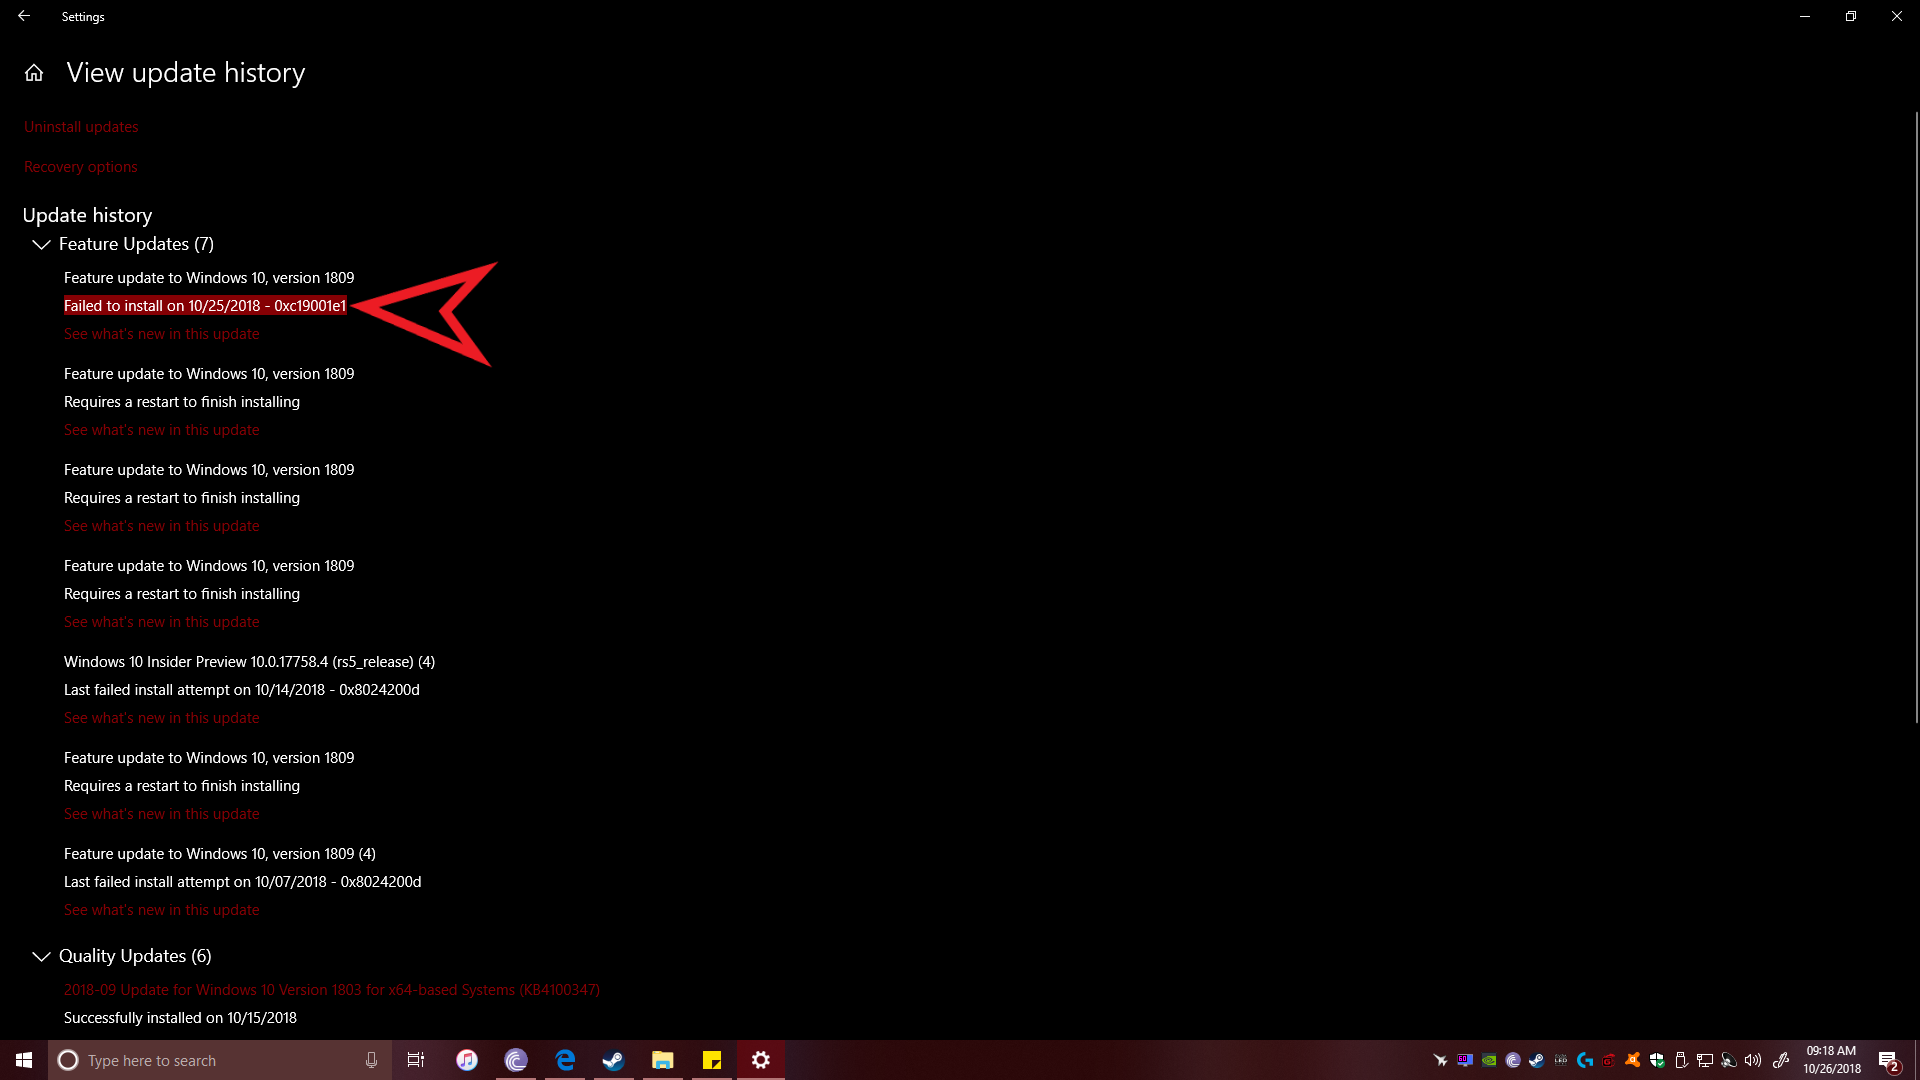 Windows 10 1809 update fails to install with error 0xc19001e1